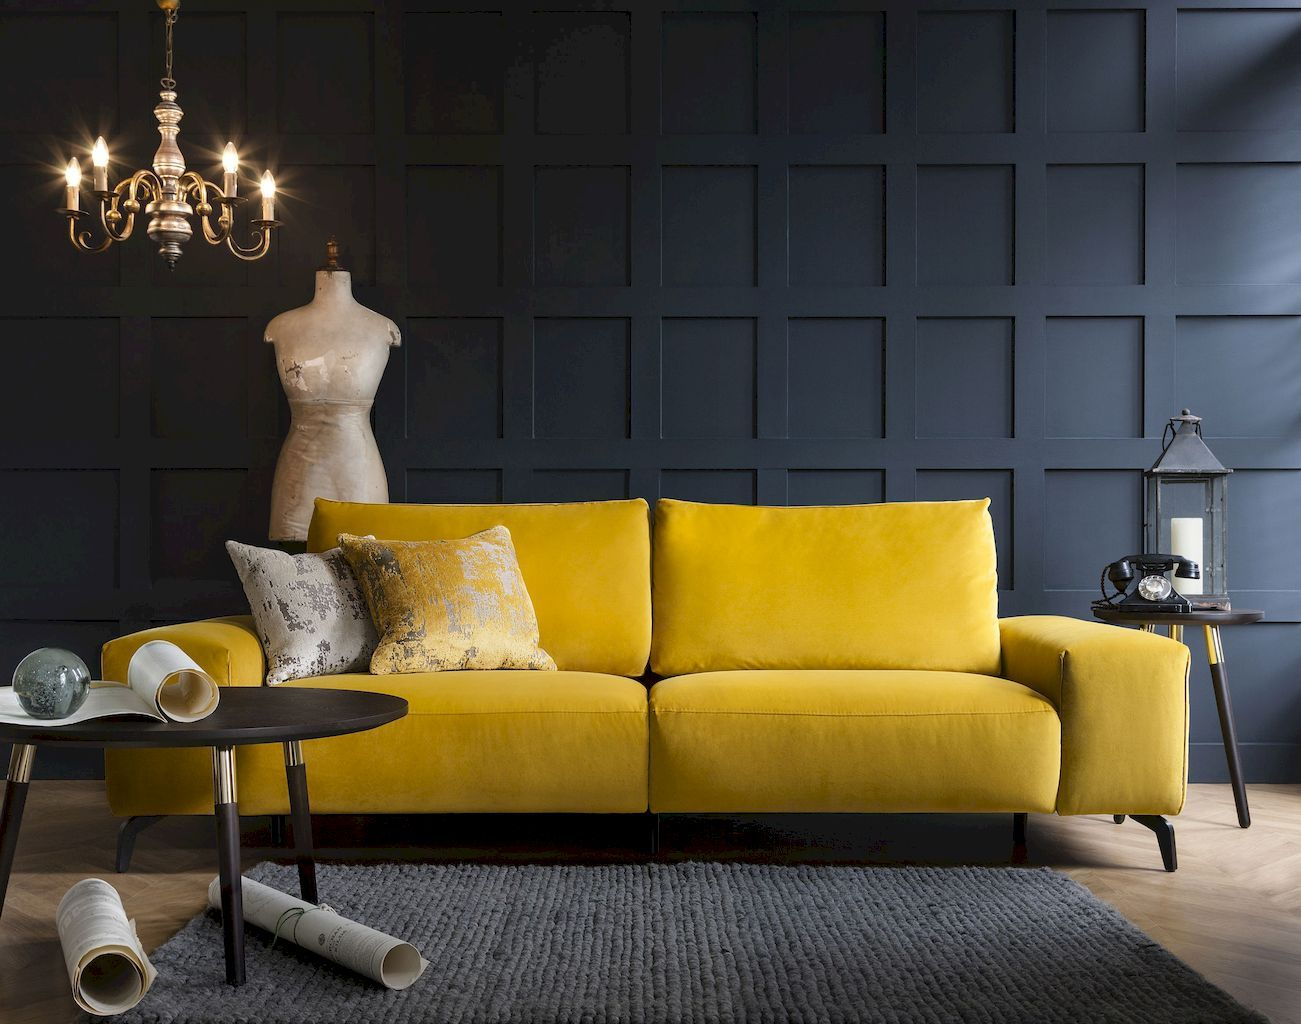 75 Beautiful Yellow Sofa for Living Room Decor Ideas images